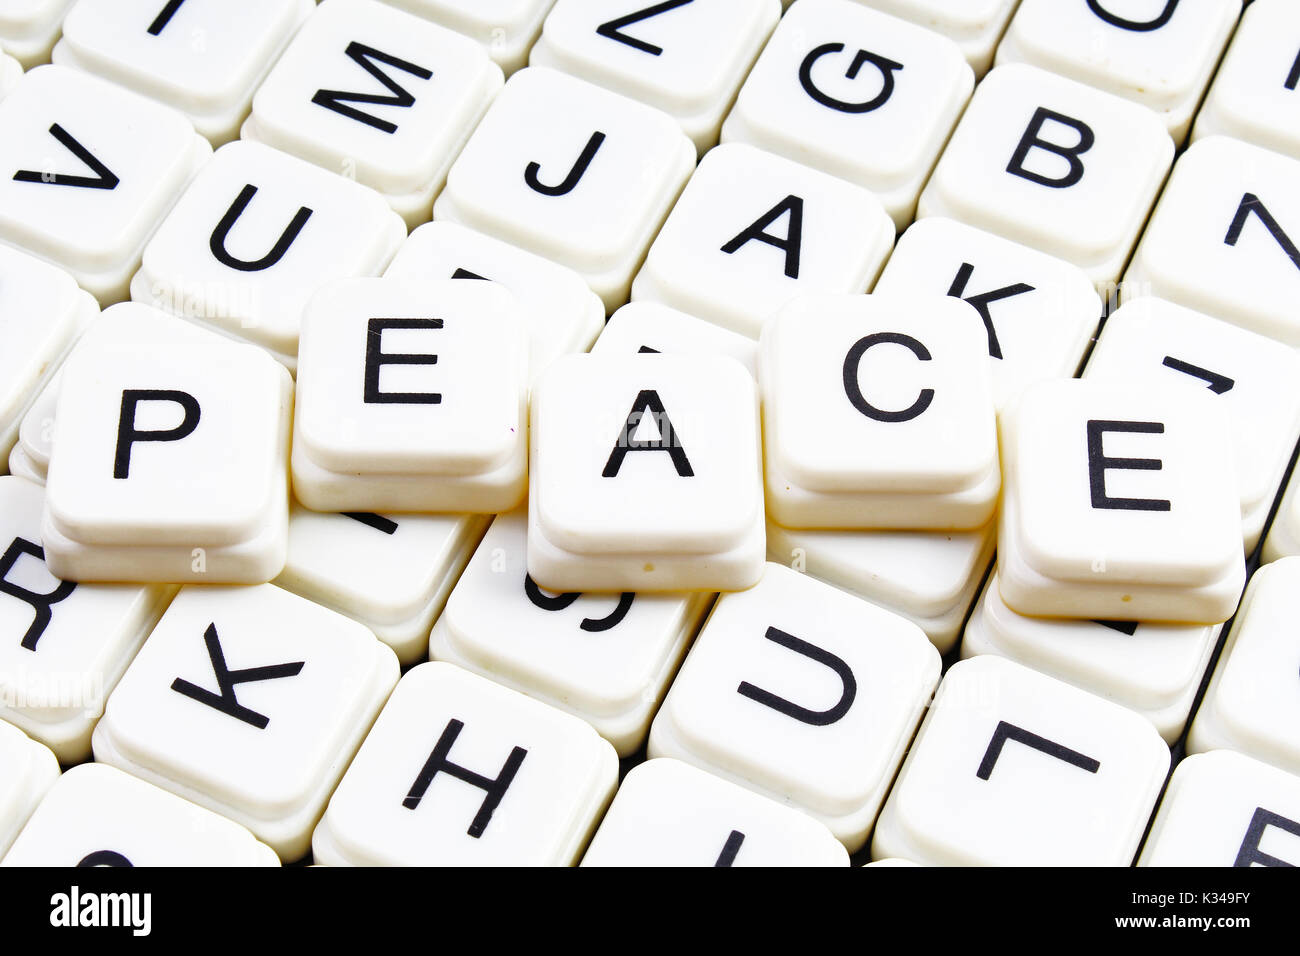 Peace symbol text keyboard image collections symbols and meanings words of peace stock photos words of peace stock images alamy peace text word crossword alphabet biocorpaavc Image collections